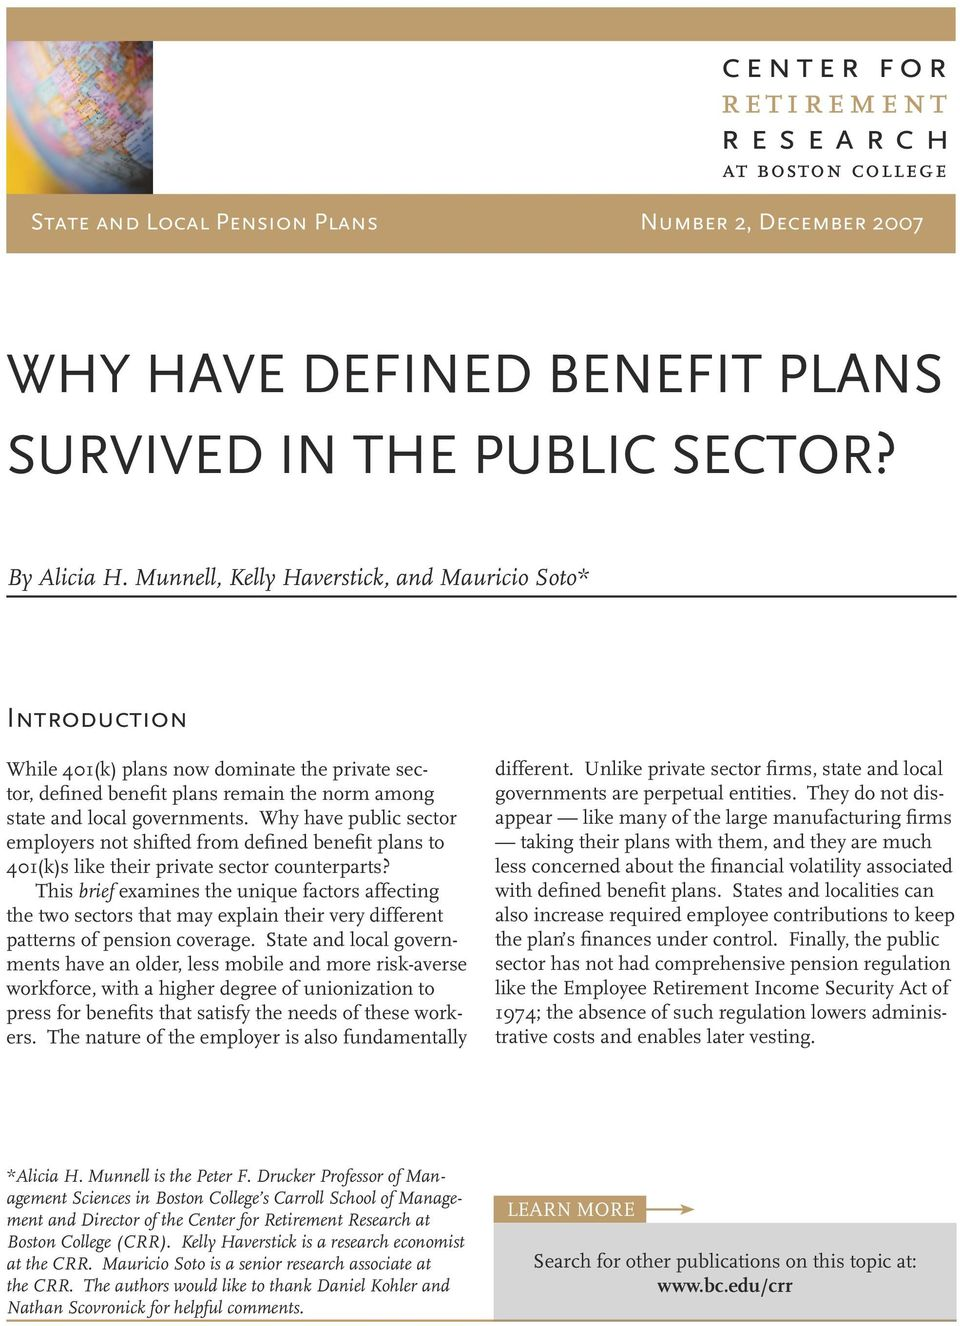 Why have public sector employers not shifted from defined benefit plans to 401(k)s like their private sector counterparts?